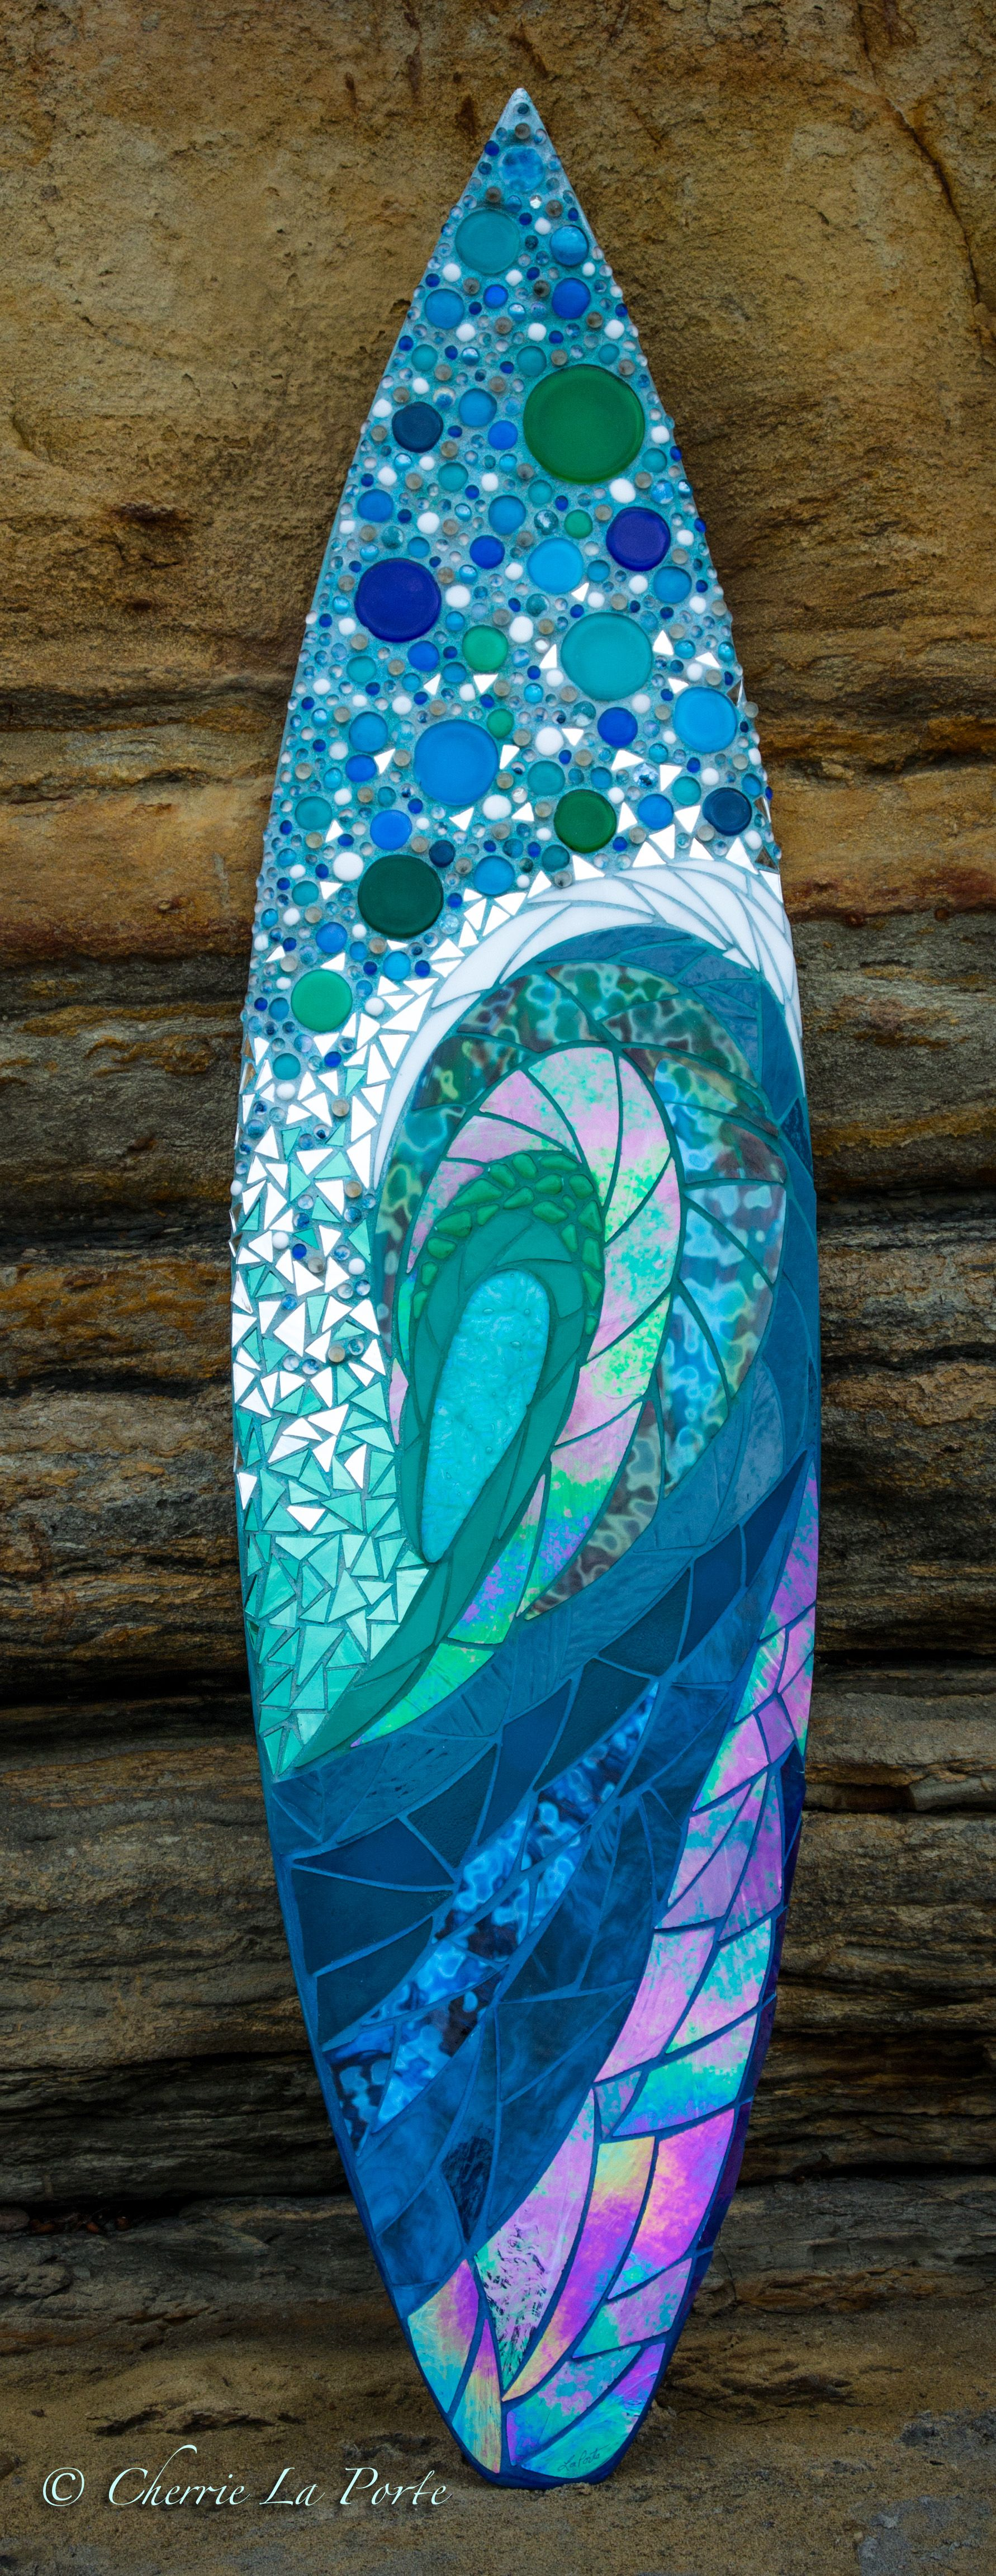 The Vertical Wave Glass Surfboard for my client in Del Mar CA! Fun ...